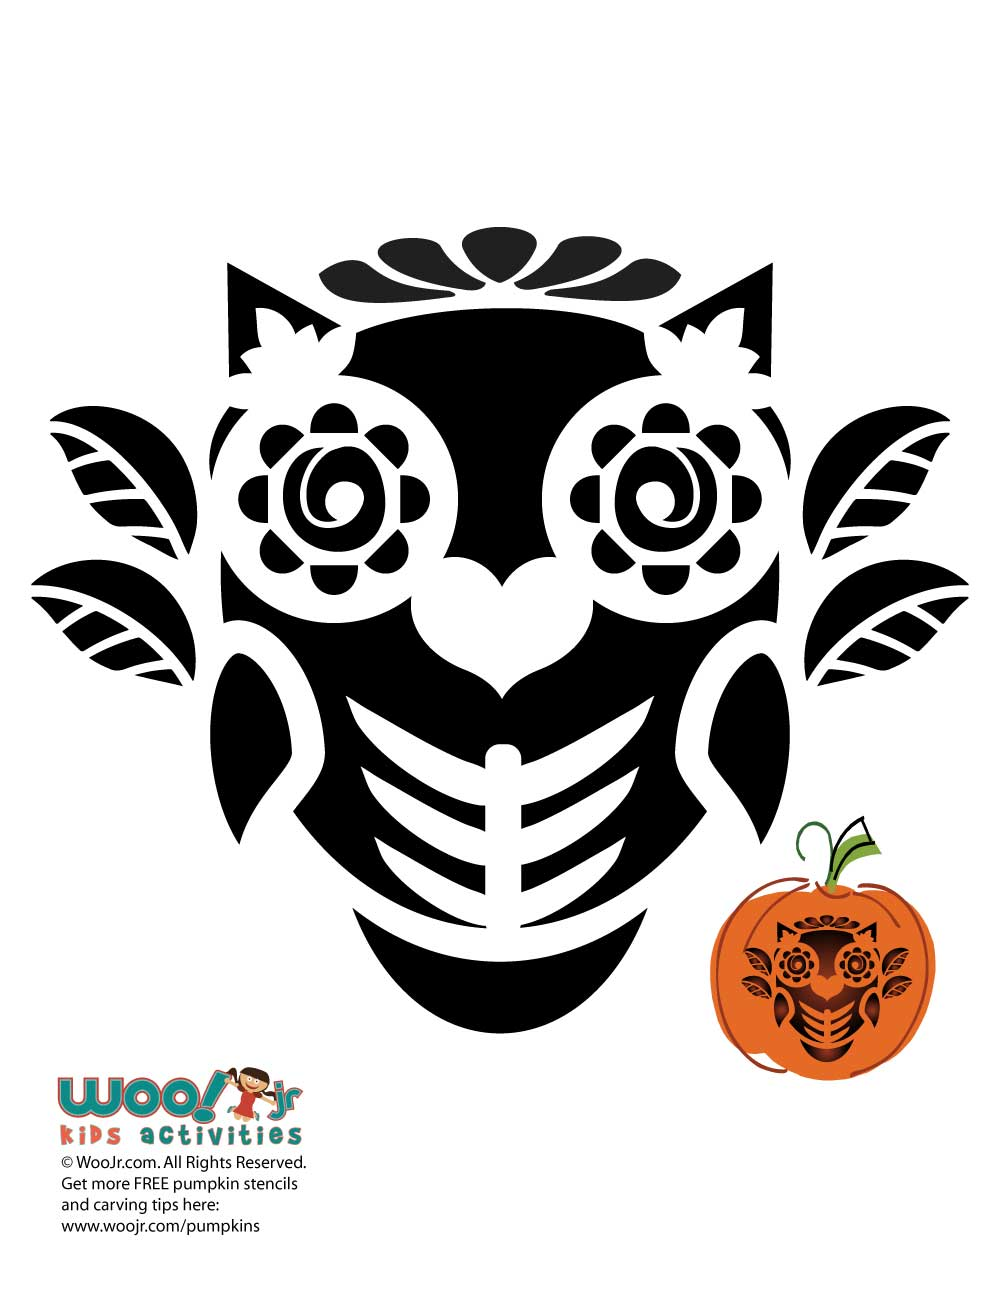 Day of the dead owl pumpkin stencil woo jr kids activities sharethis copy and paste pronofoot35fo Choice Image